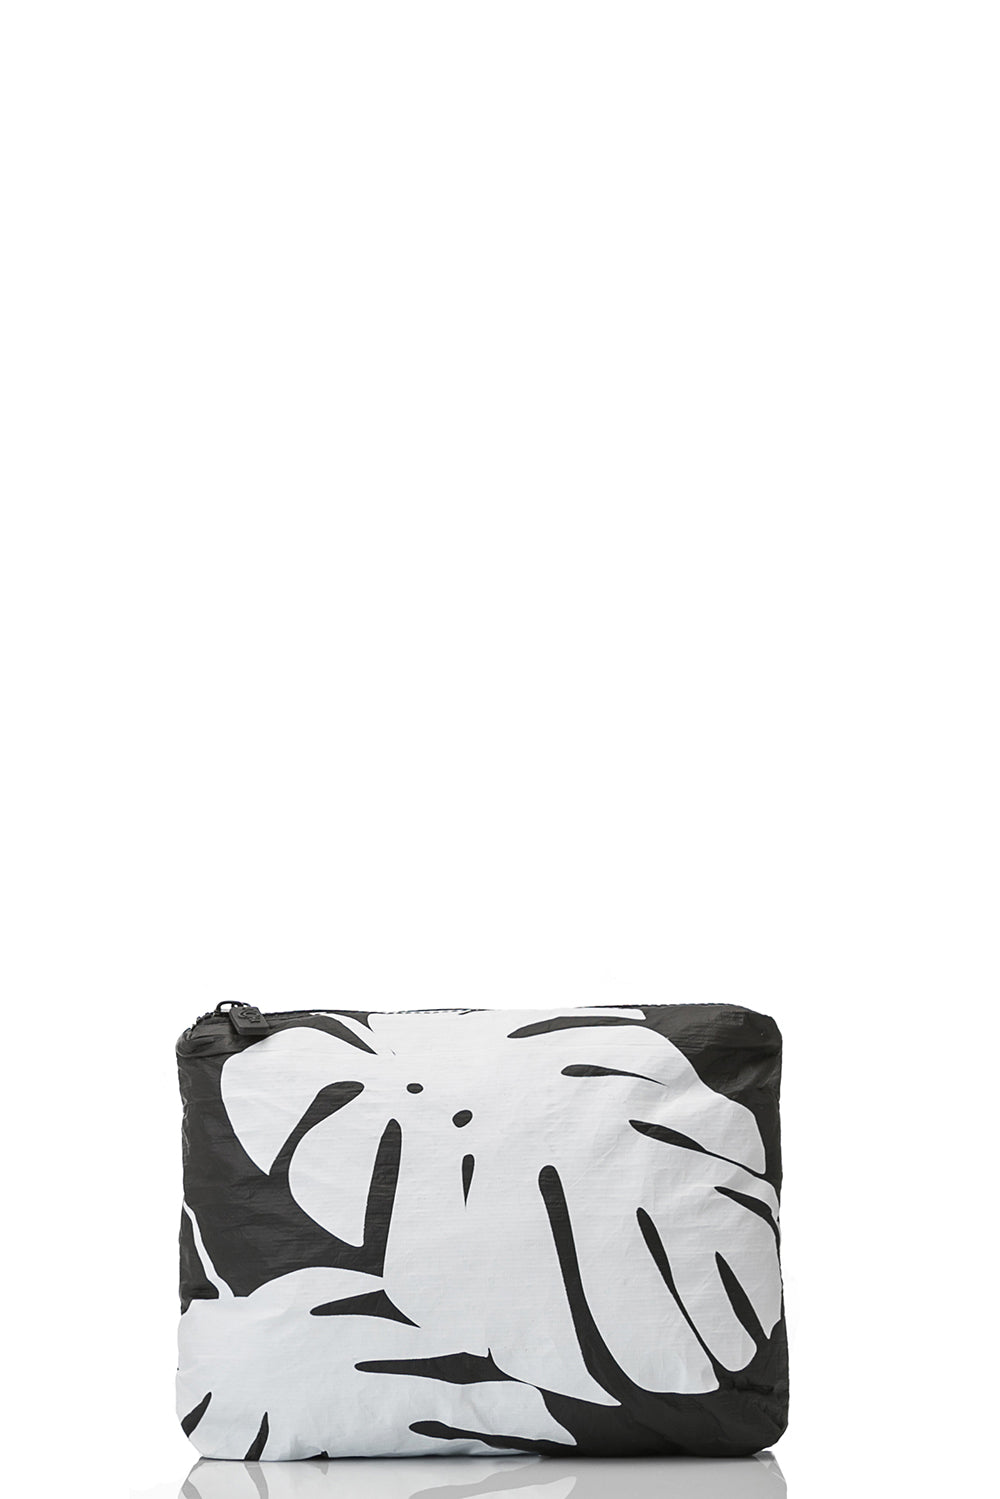 ALOHA Collection Small Monstera White on Black